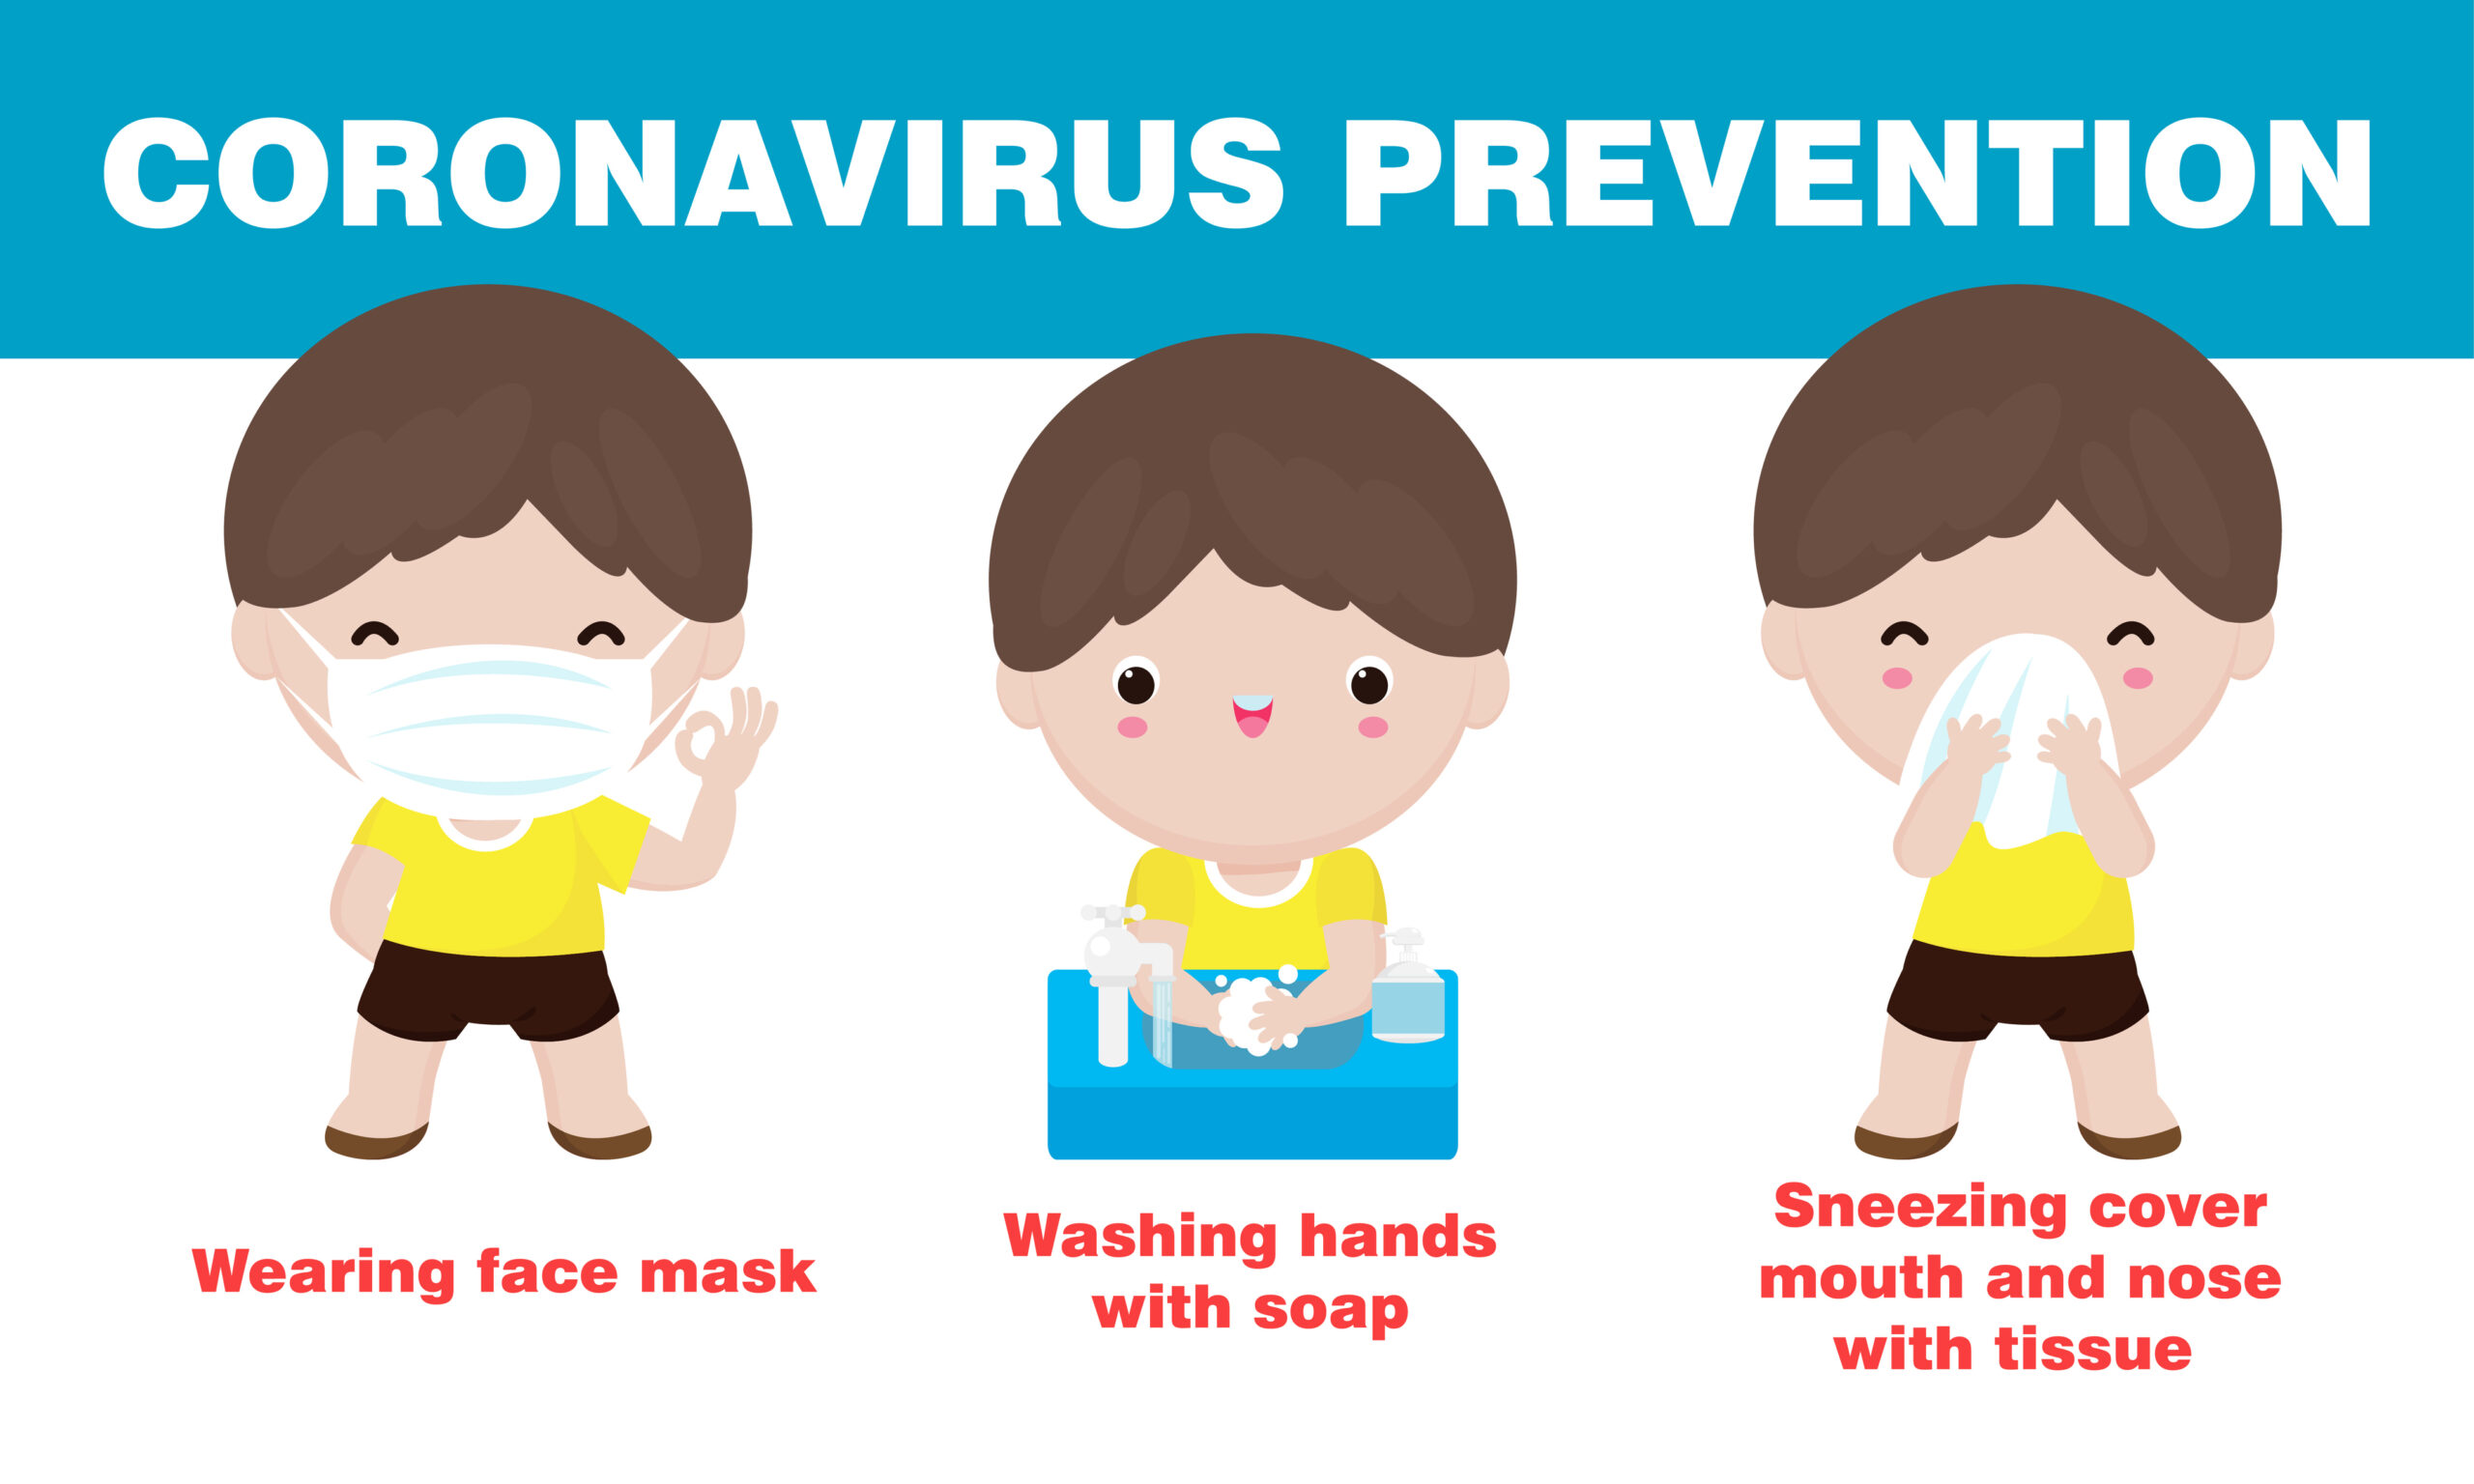 Prevention tips infographic of coronavirus 2019 nCoV. wearing face mask, washing hands with soap, sneezing cover mouth and nose with tissue. Concept of flu outbreak